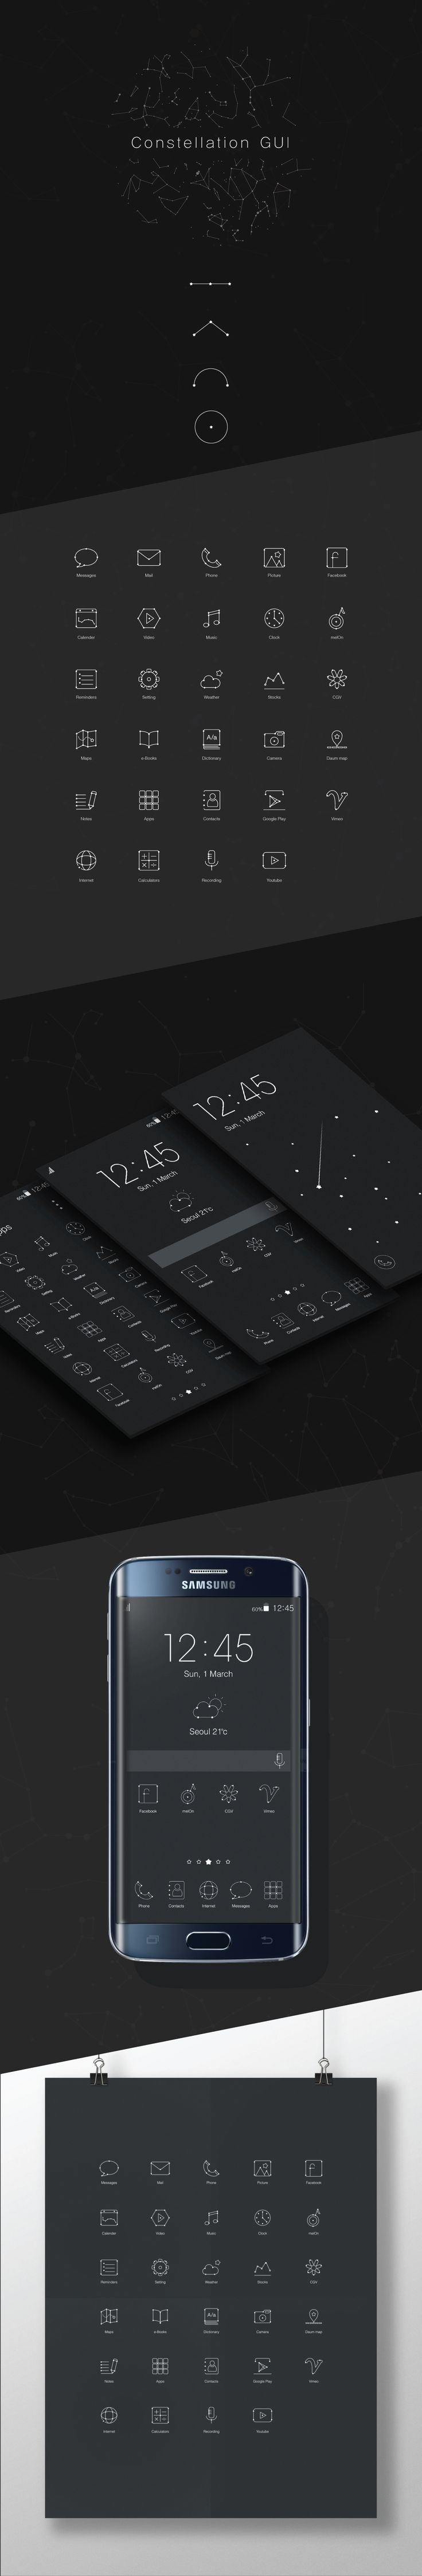 Constellation GUI on Behance